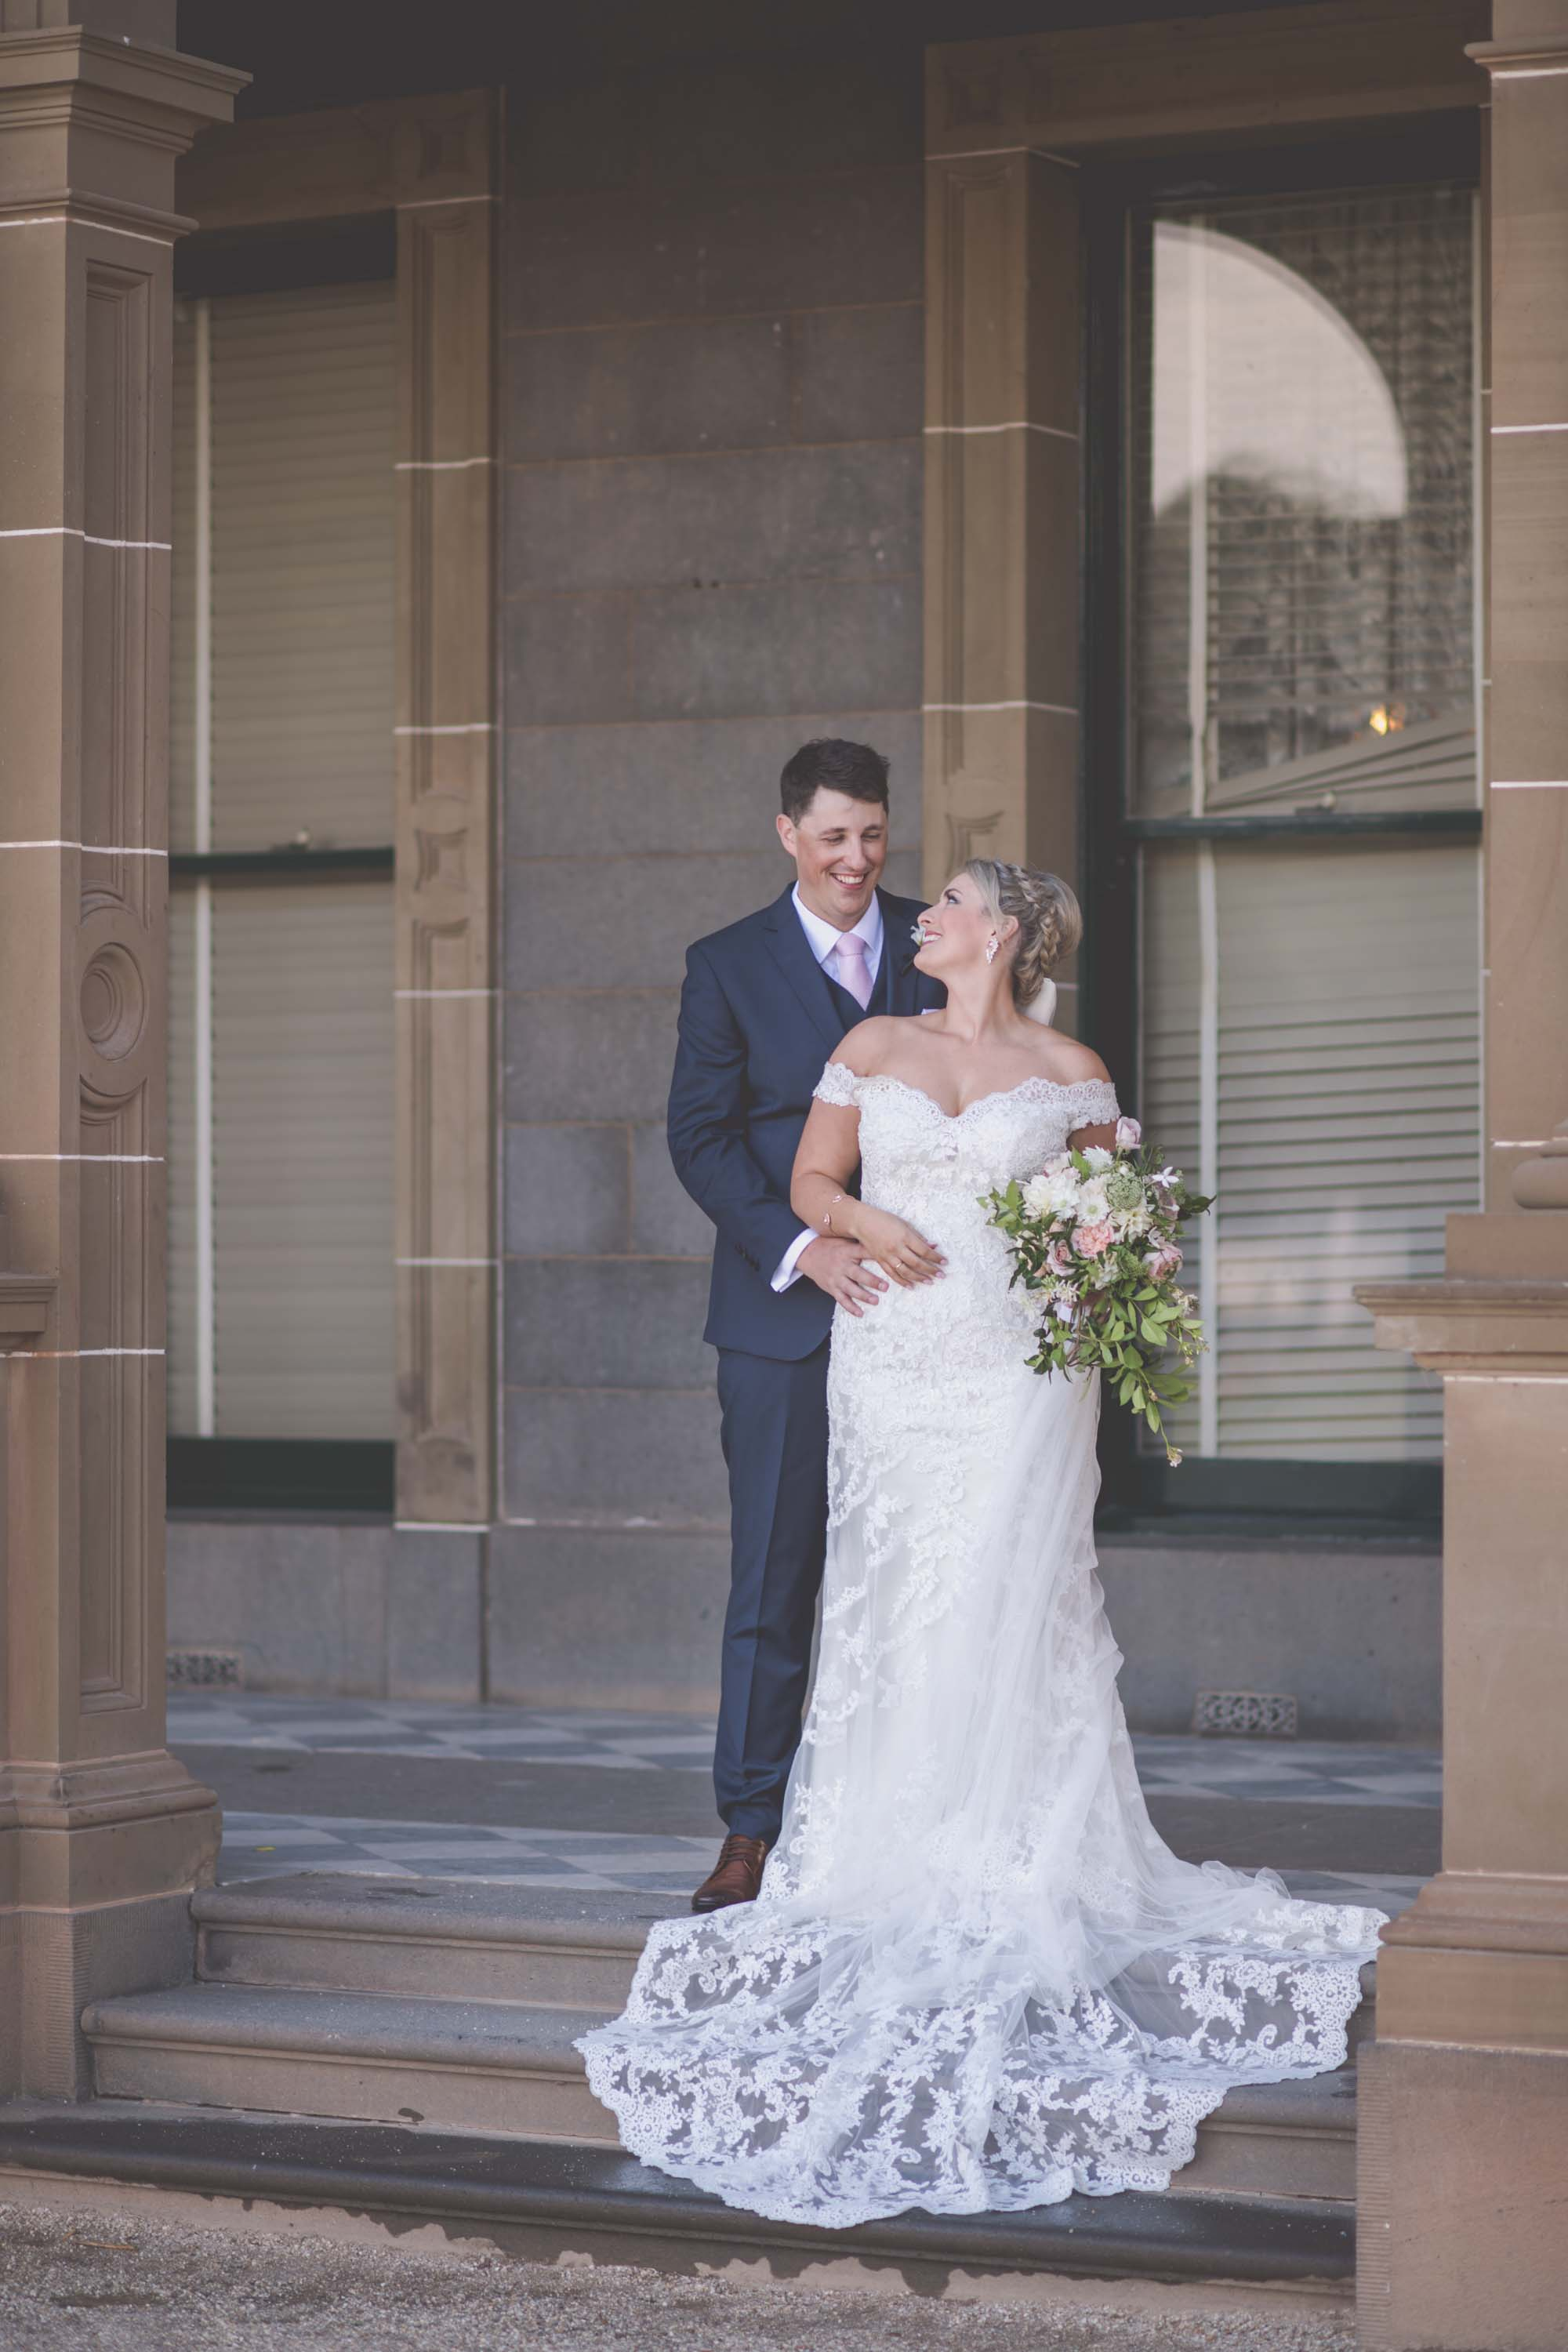 Wedding photography by Pause the Moment at Werribee Mansion